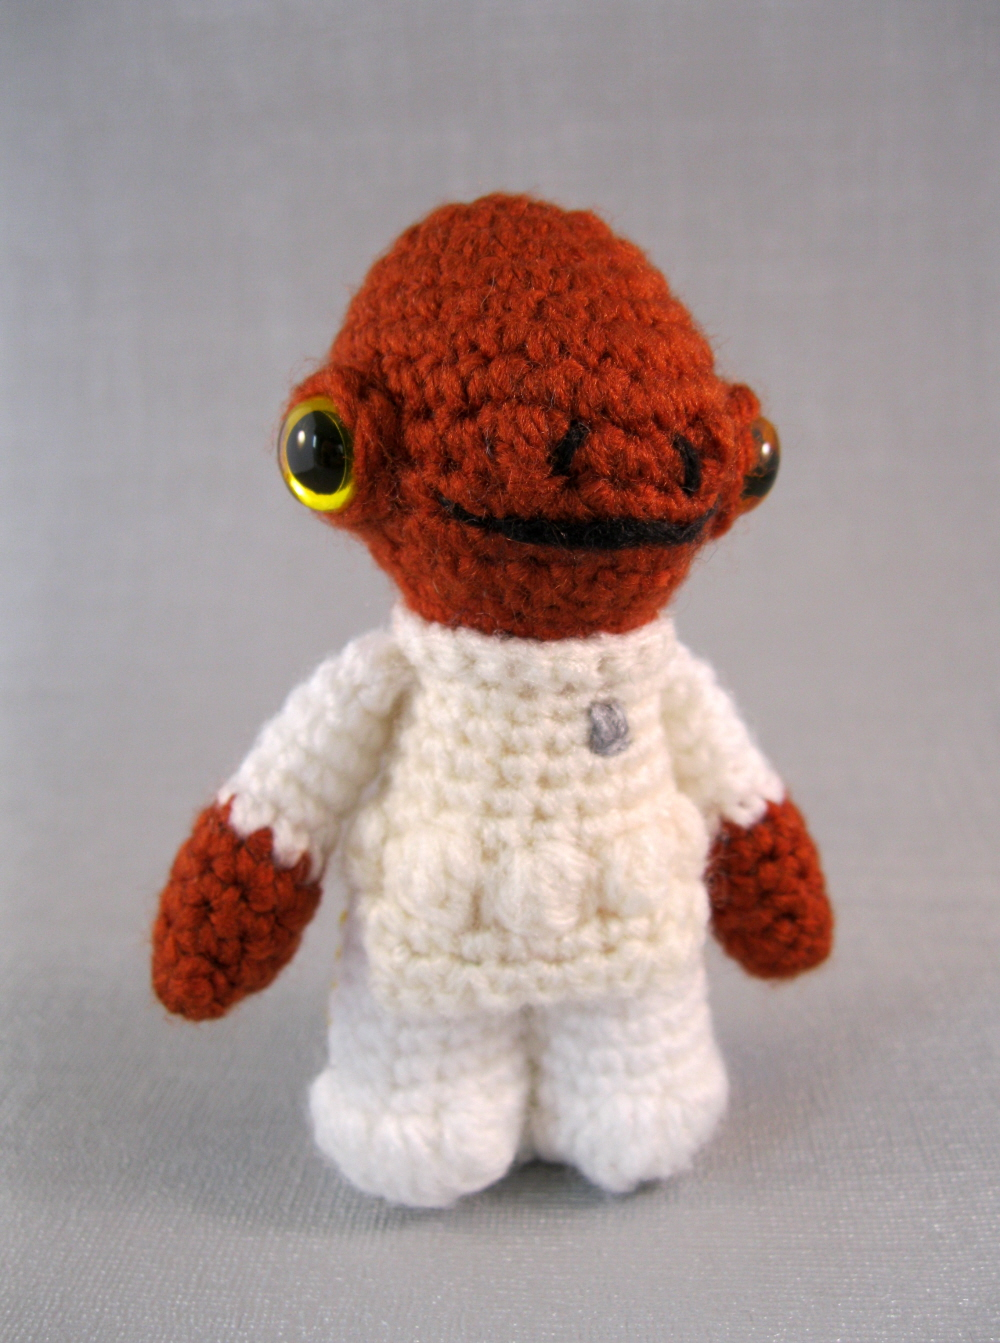 Amigurumi Sushi Crochet Pattern : LucyRavenscar - Crochet Creatures: My patterns for sale on ...